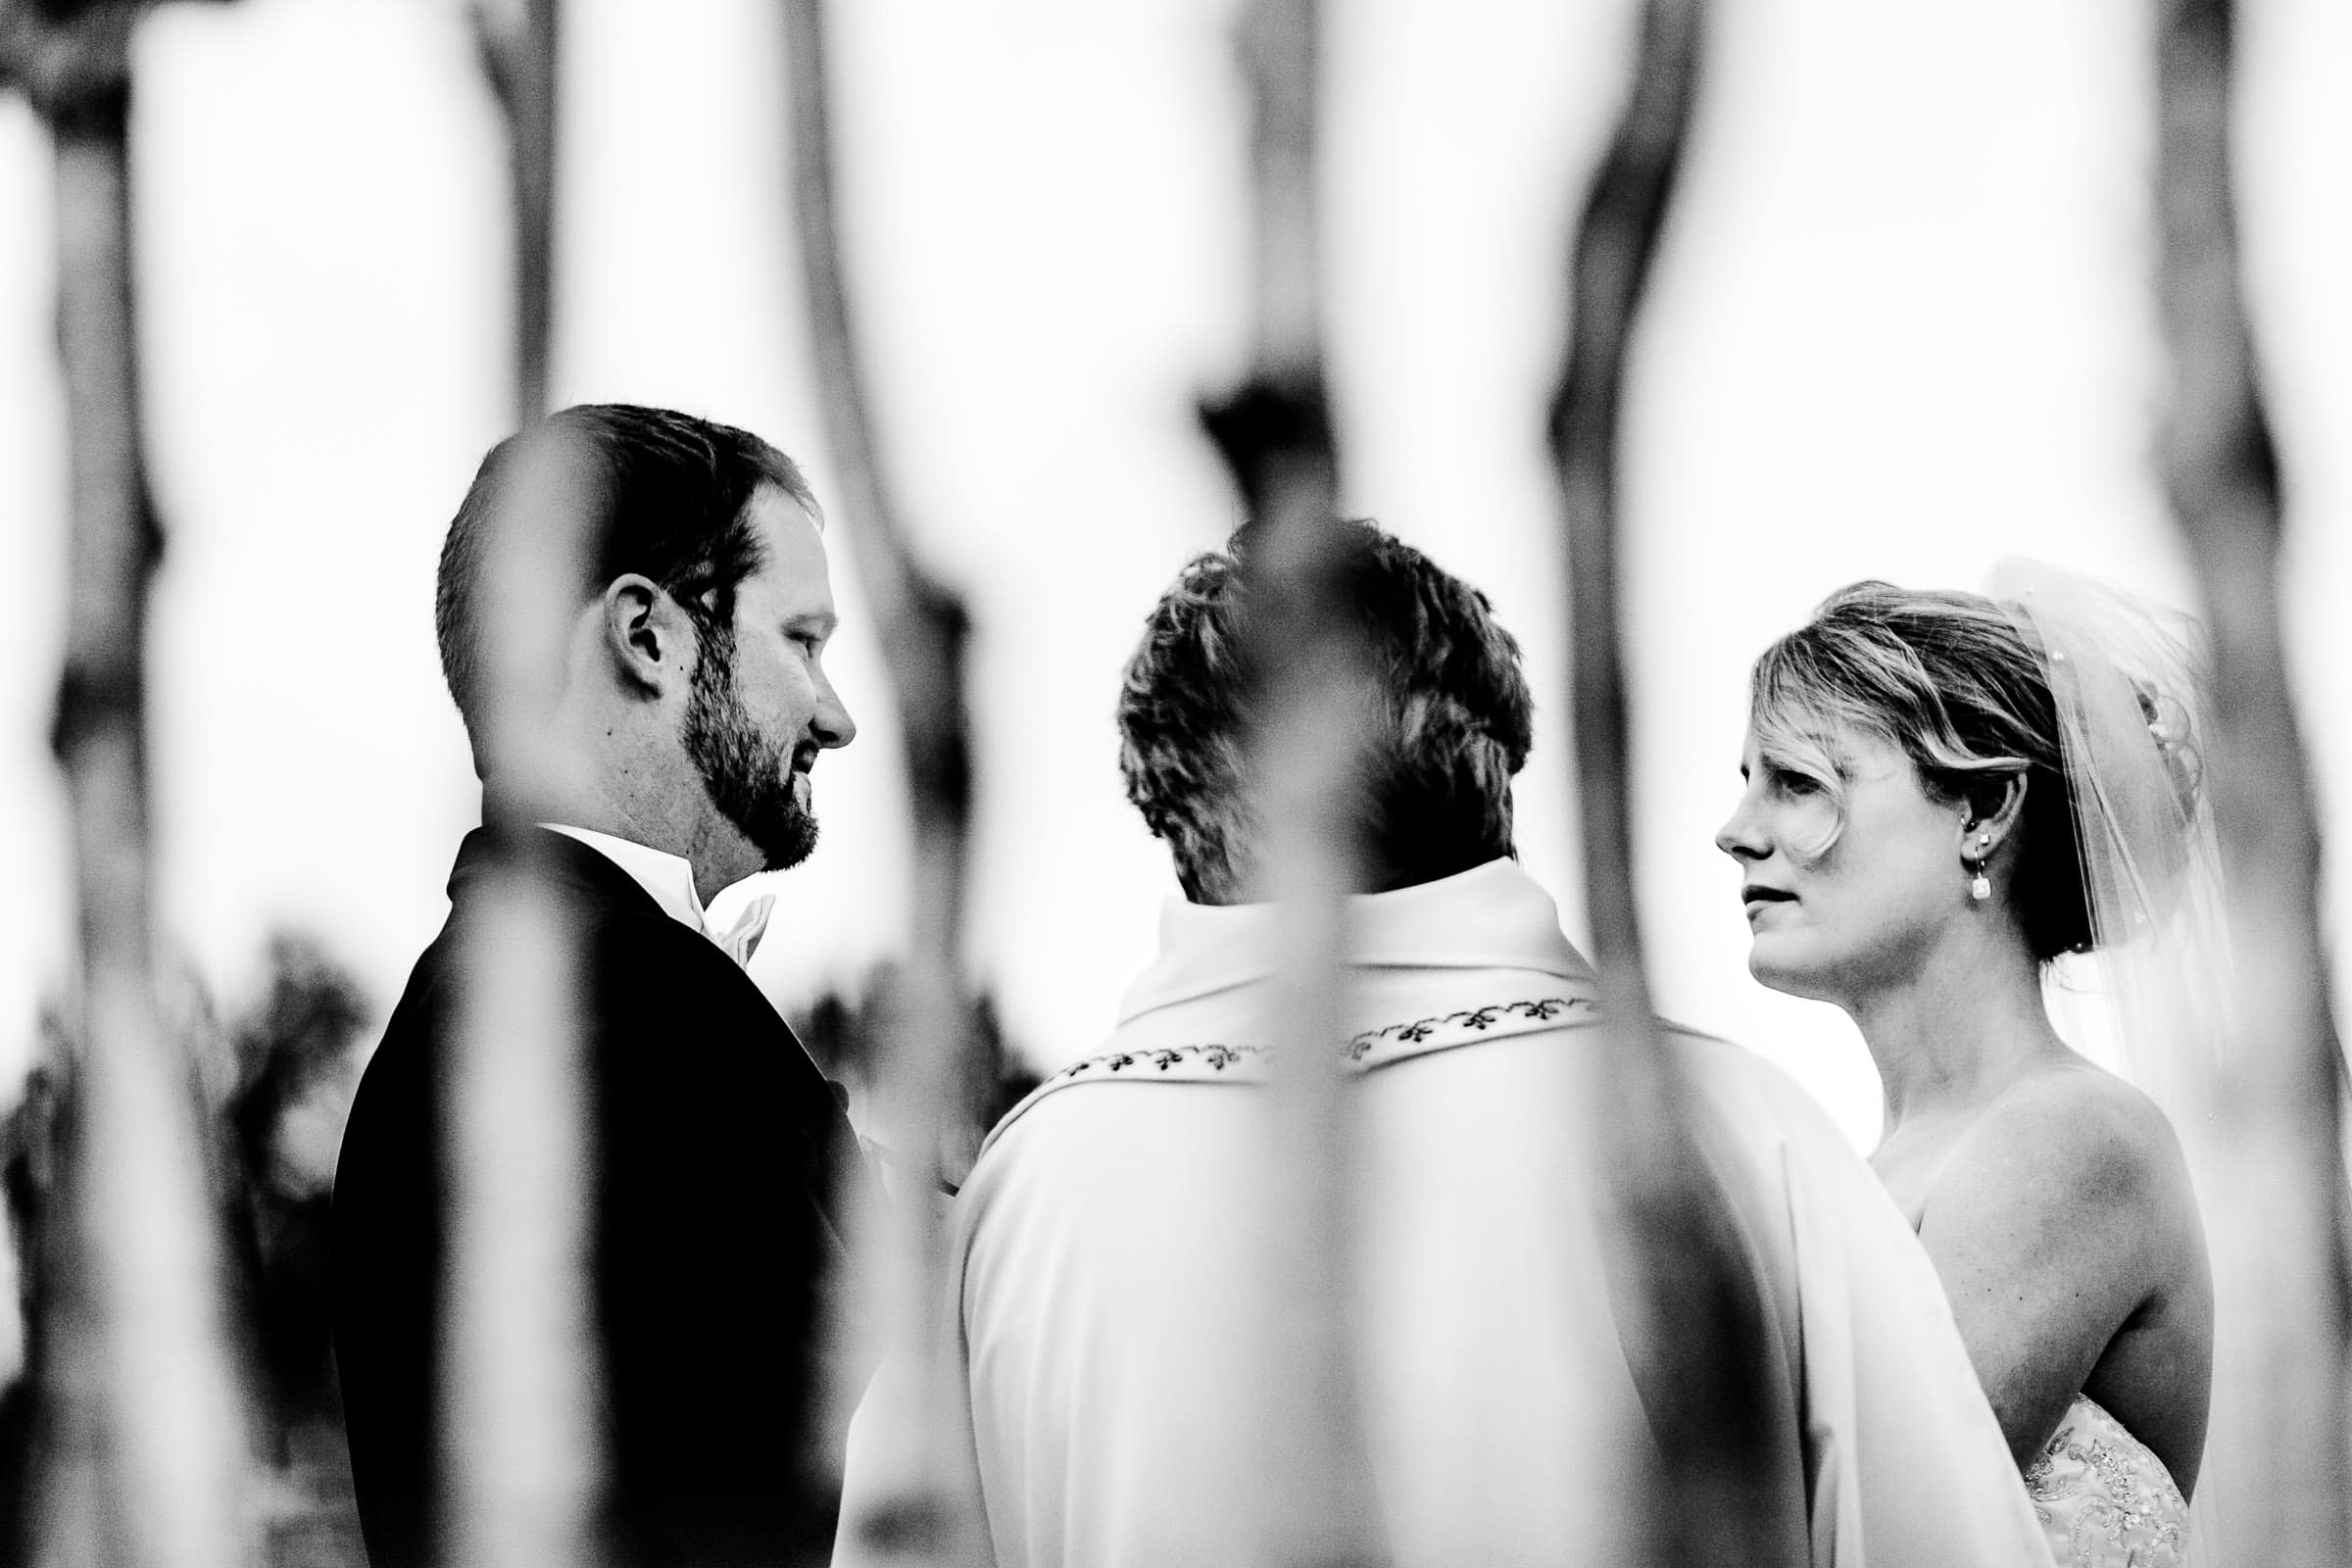 Abstract photo of a bride and groom exchanging vows during their Trapp Family Lodge wedding ceremony in Stowe, Vermont.